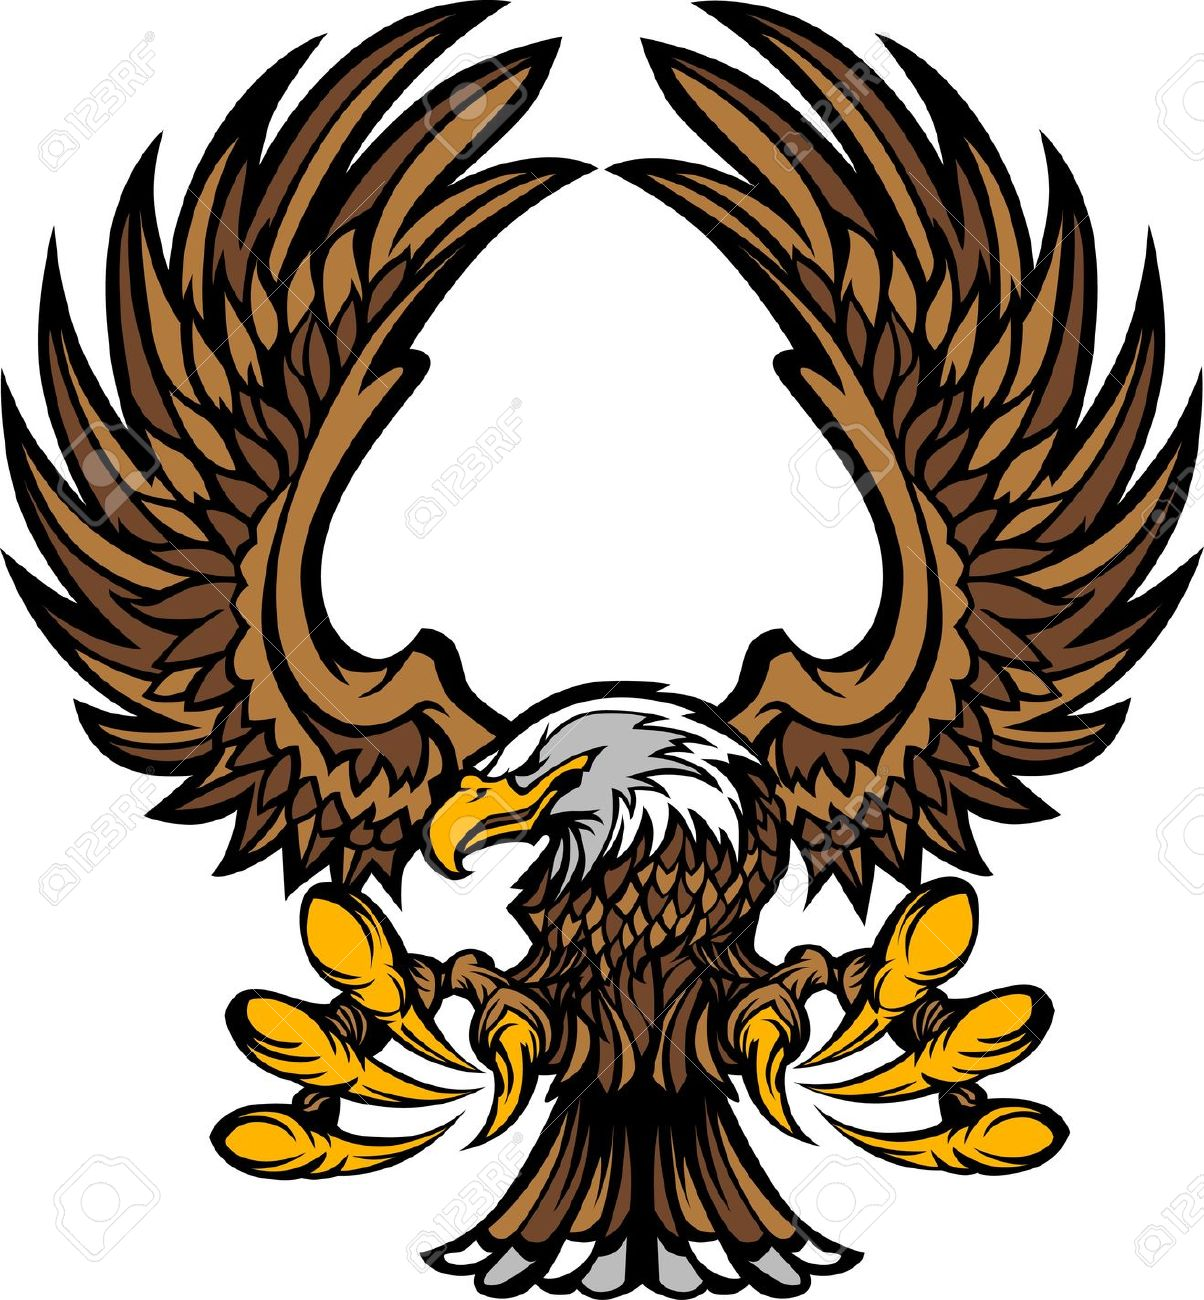 1204x1300 Royalty Free Eagle Clipart Amp Royalty Free Eagle Clip Art Images